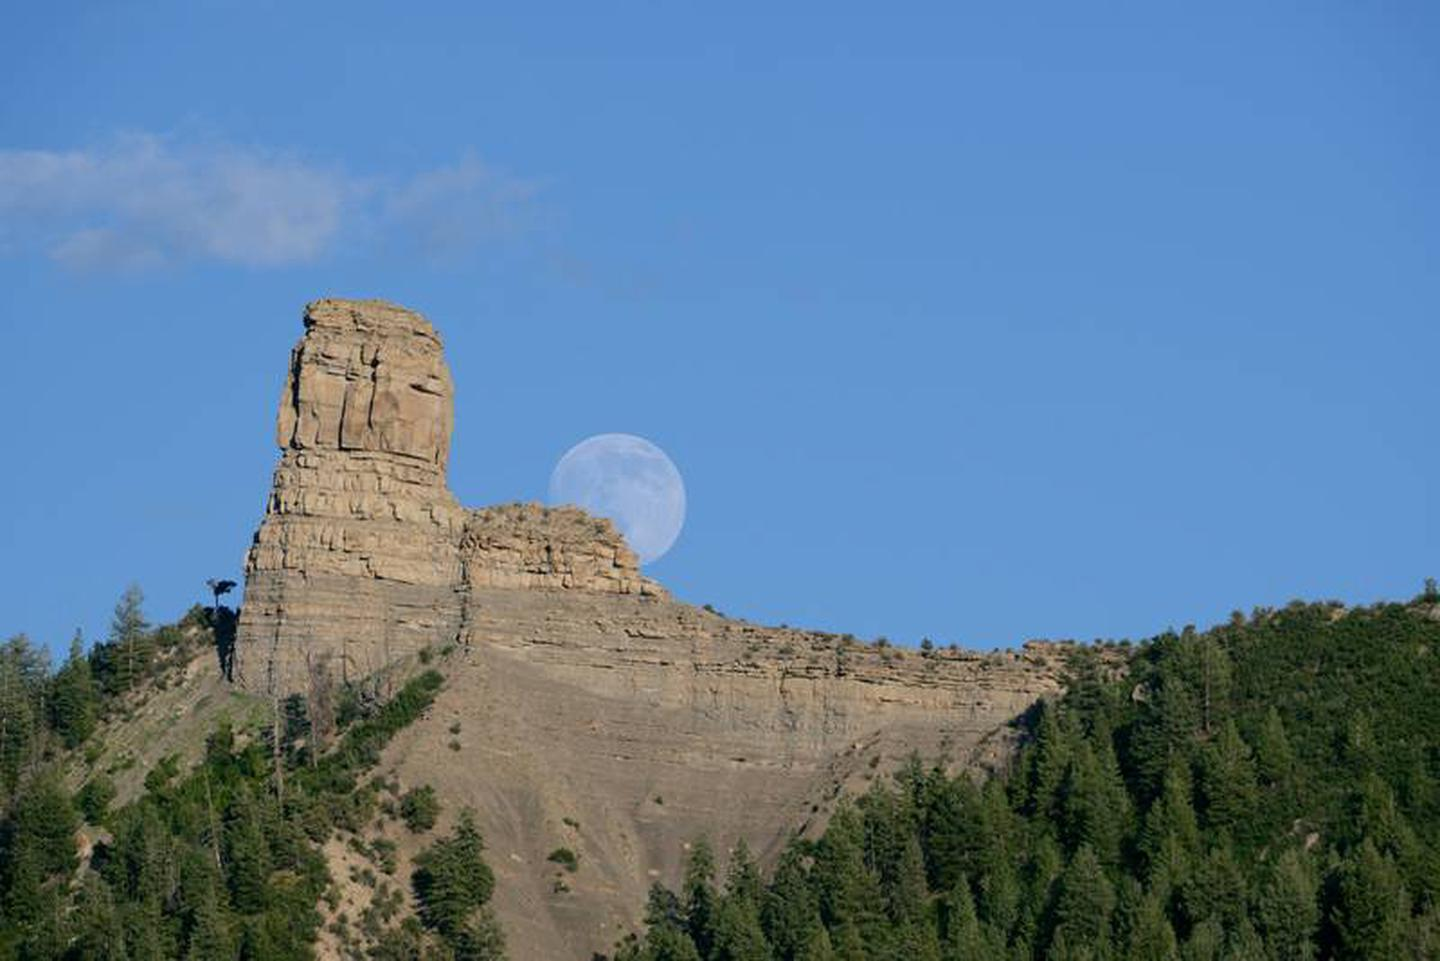 FULL MOON PROGRAM AT CHIMNEY ROCKWatch the full moon rise over the San Juan Mountains at the Full Moon Program.  You'll be torn between looking west to see the spectacular sunset and focusing on the eastern mountain range to see the first sliver of moon.